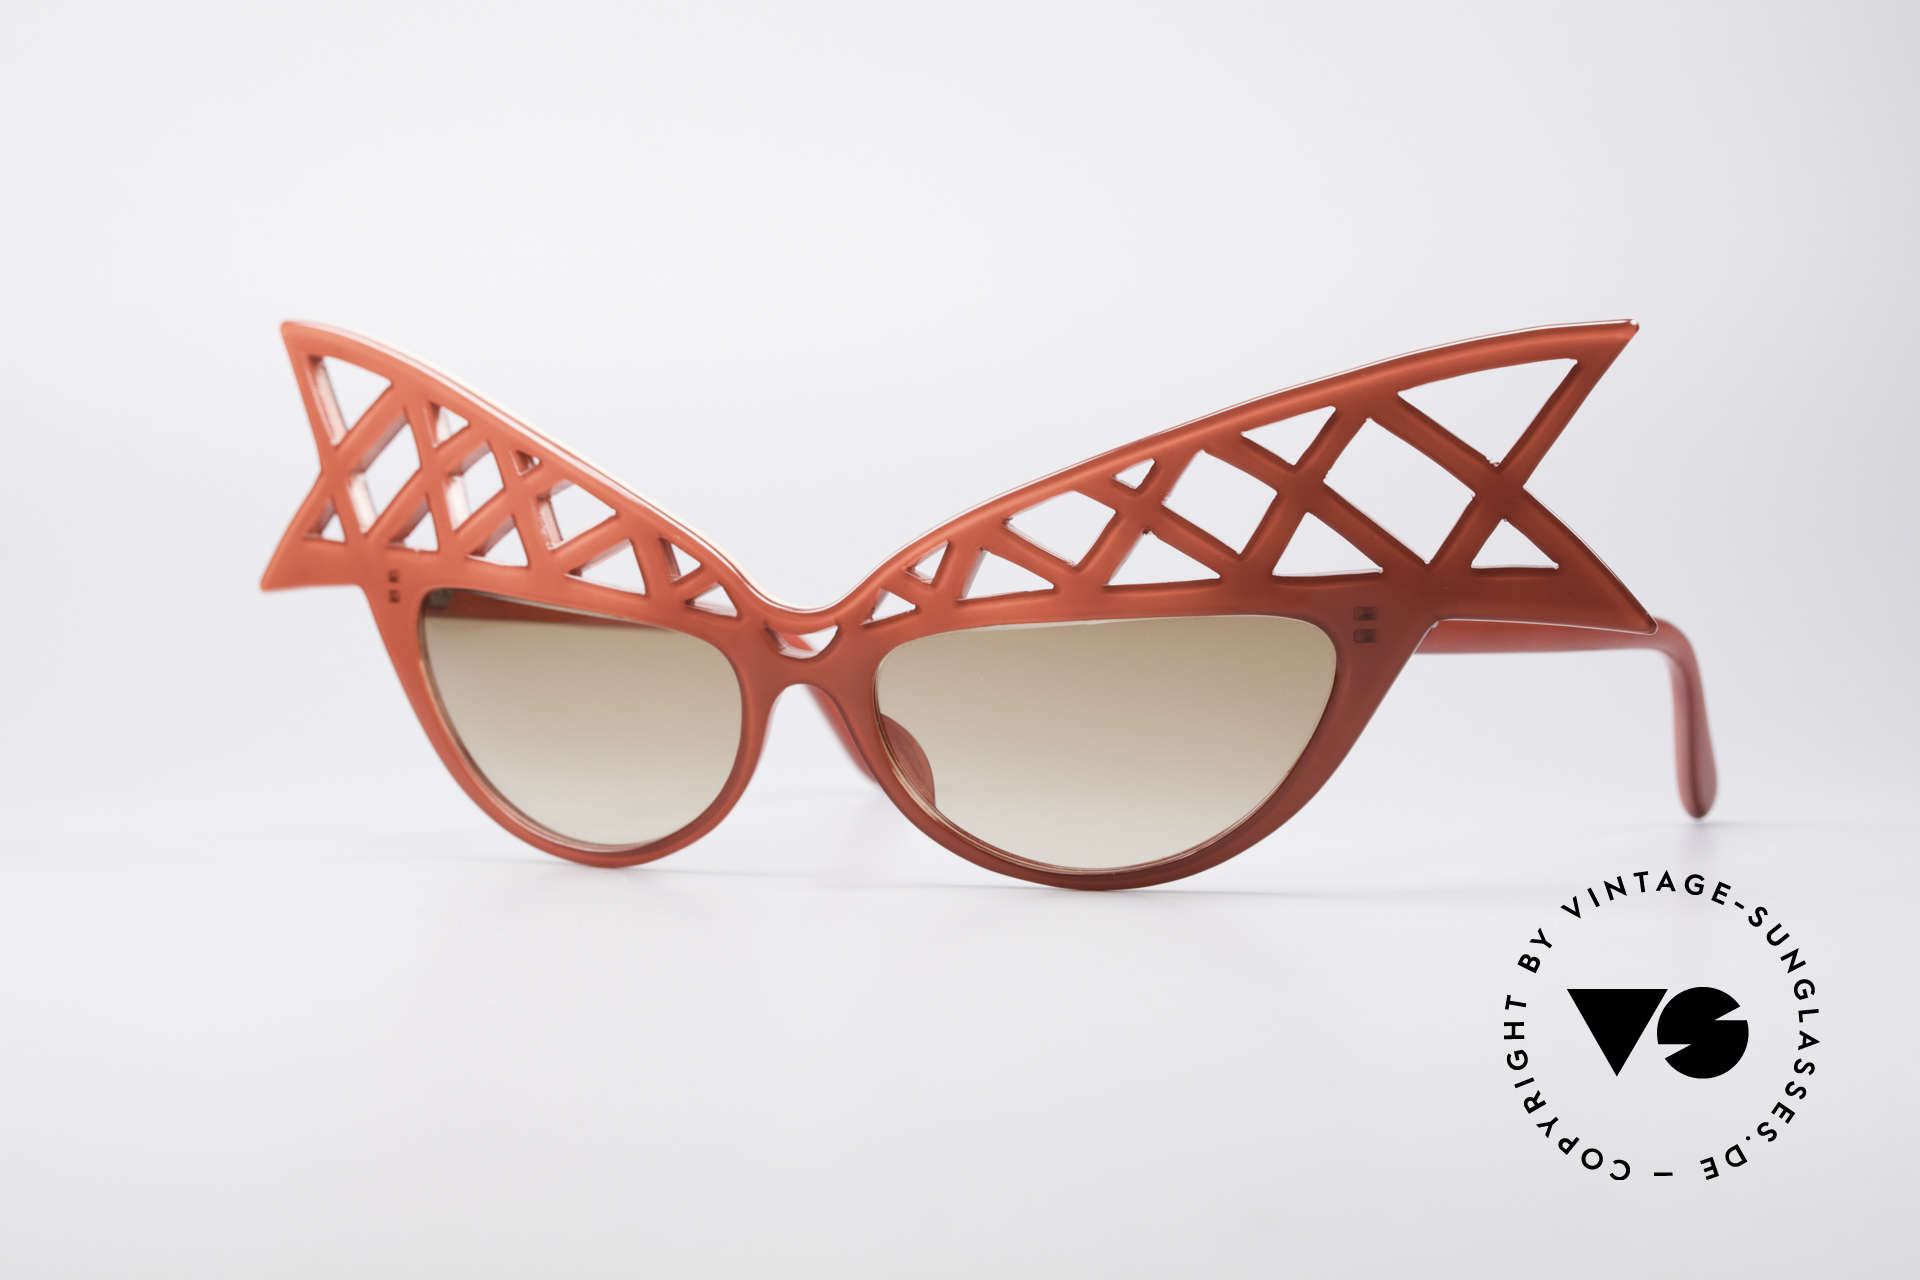 Alain Mikli WINGS Haute Couture Vintage Shades, ultra-rare Alain Mikli Paris WINGS vintage sunglasses, Made for Women